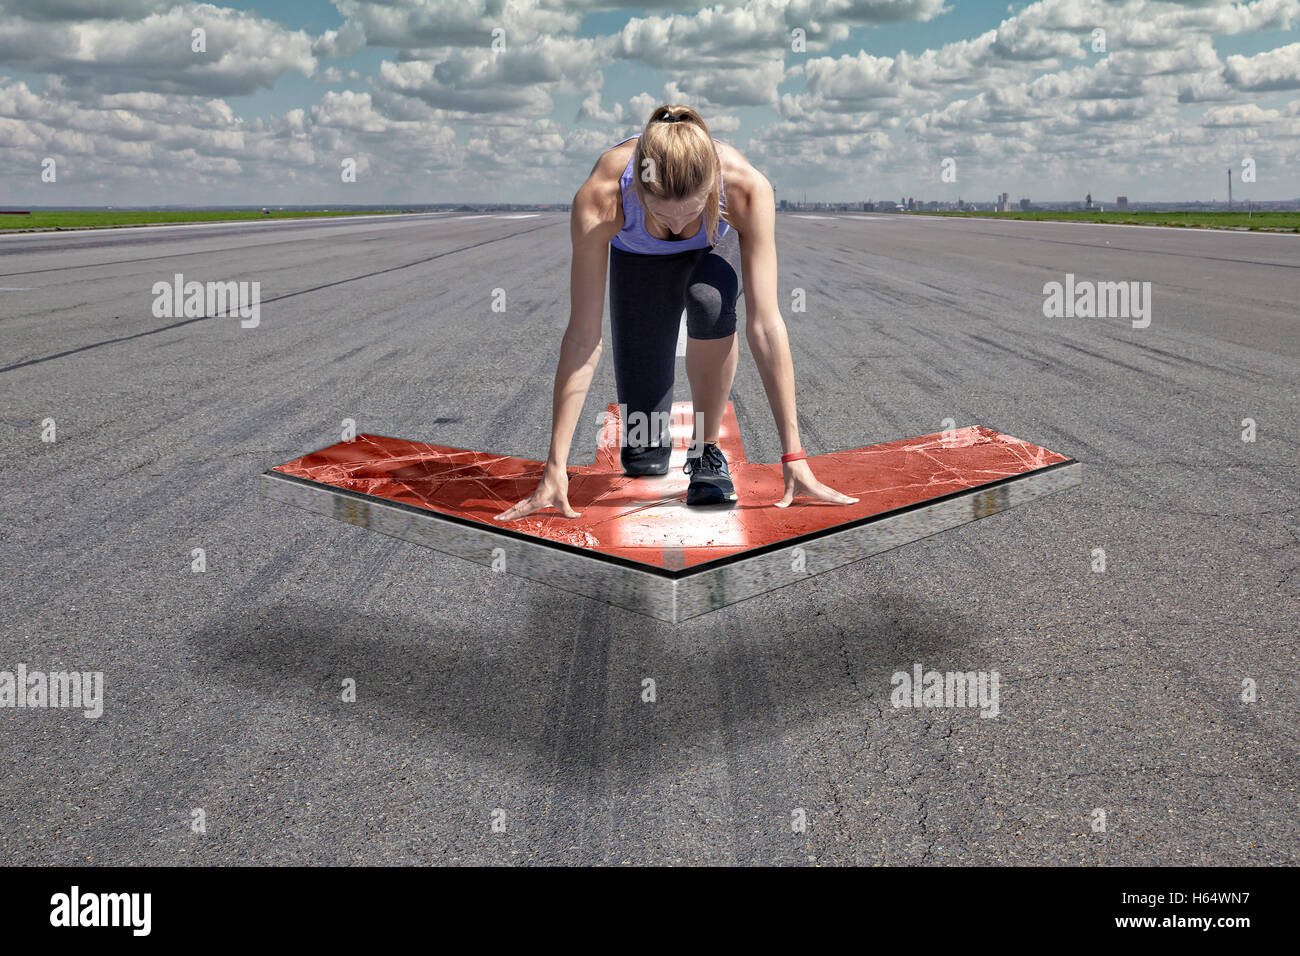 Female runner kneels in start position on a red floating arrow platform, which is placed above an airport runway Stock Photo